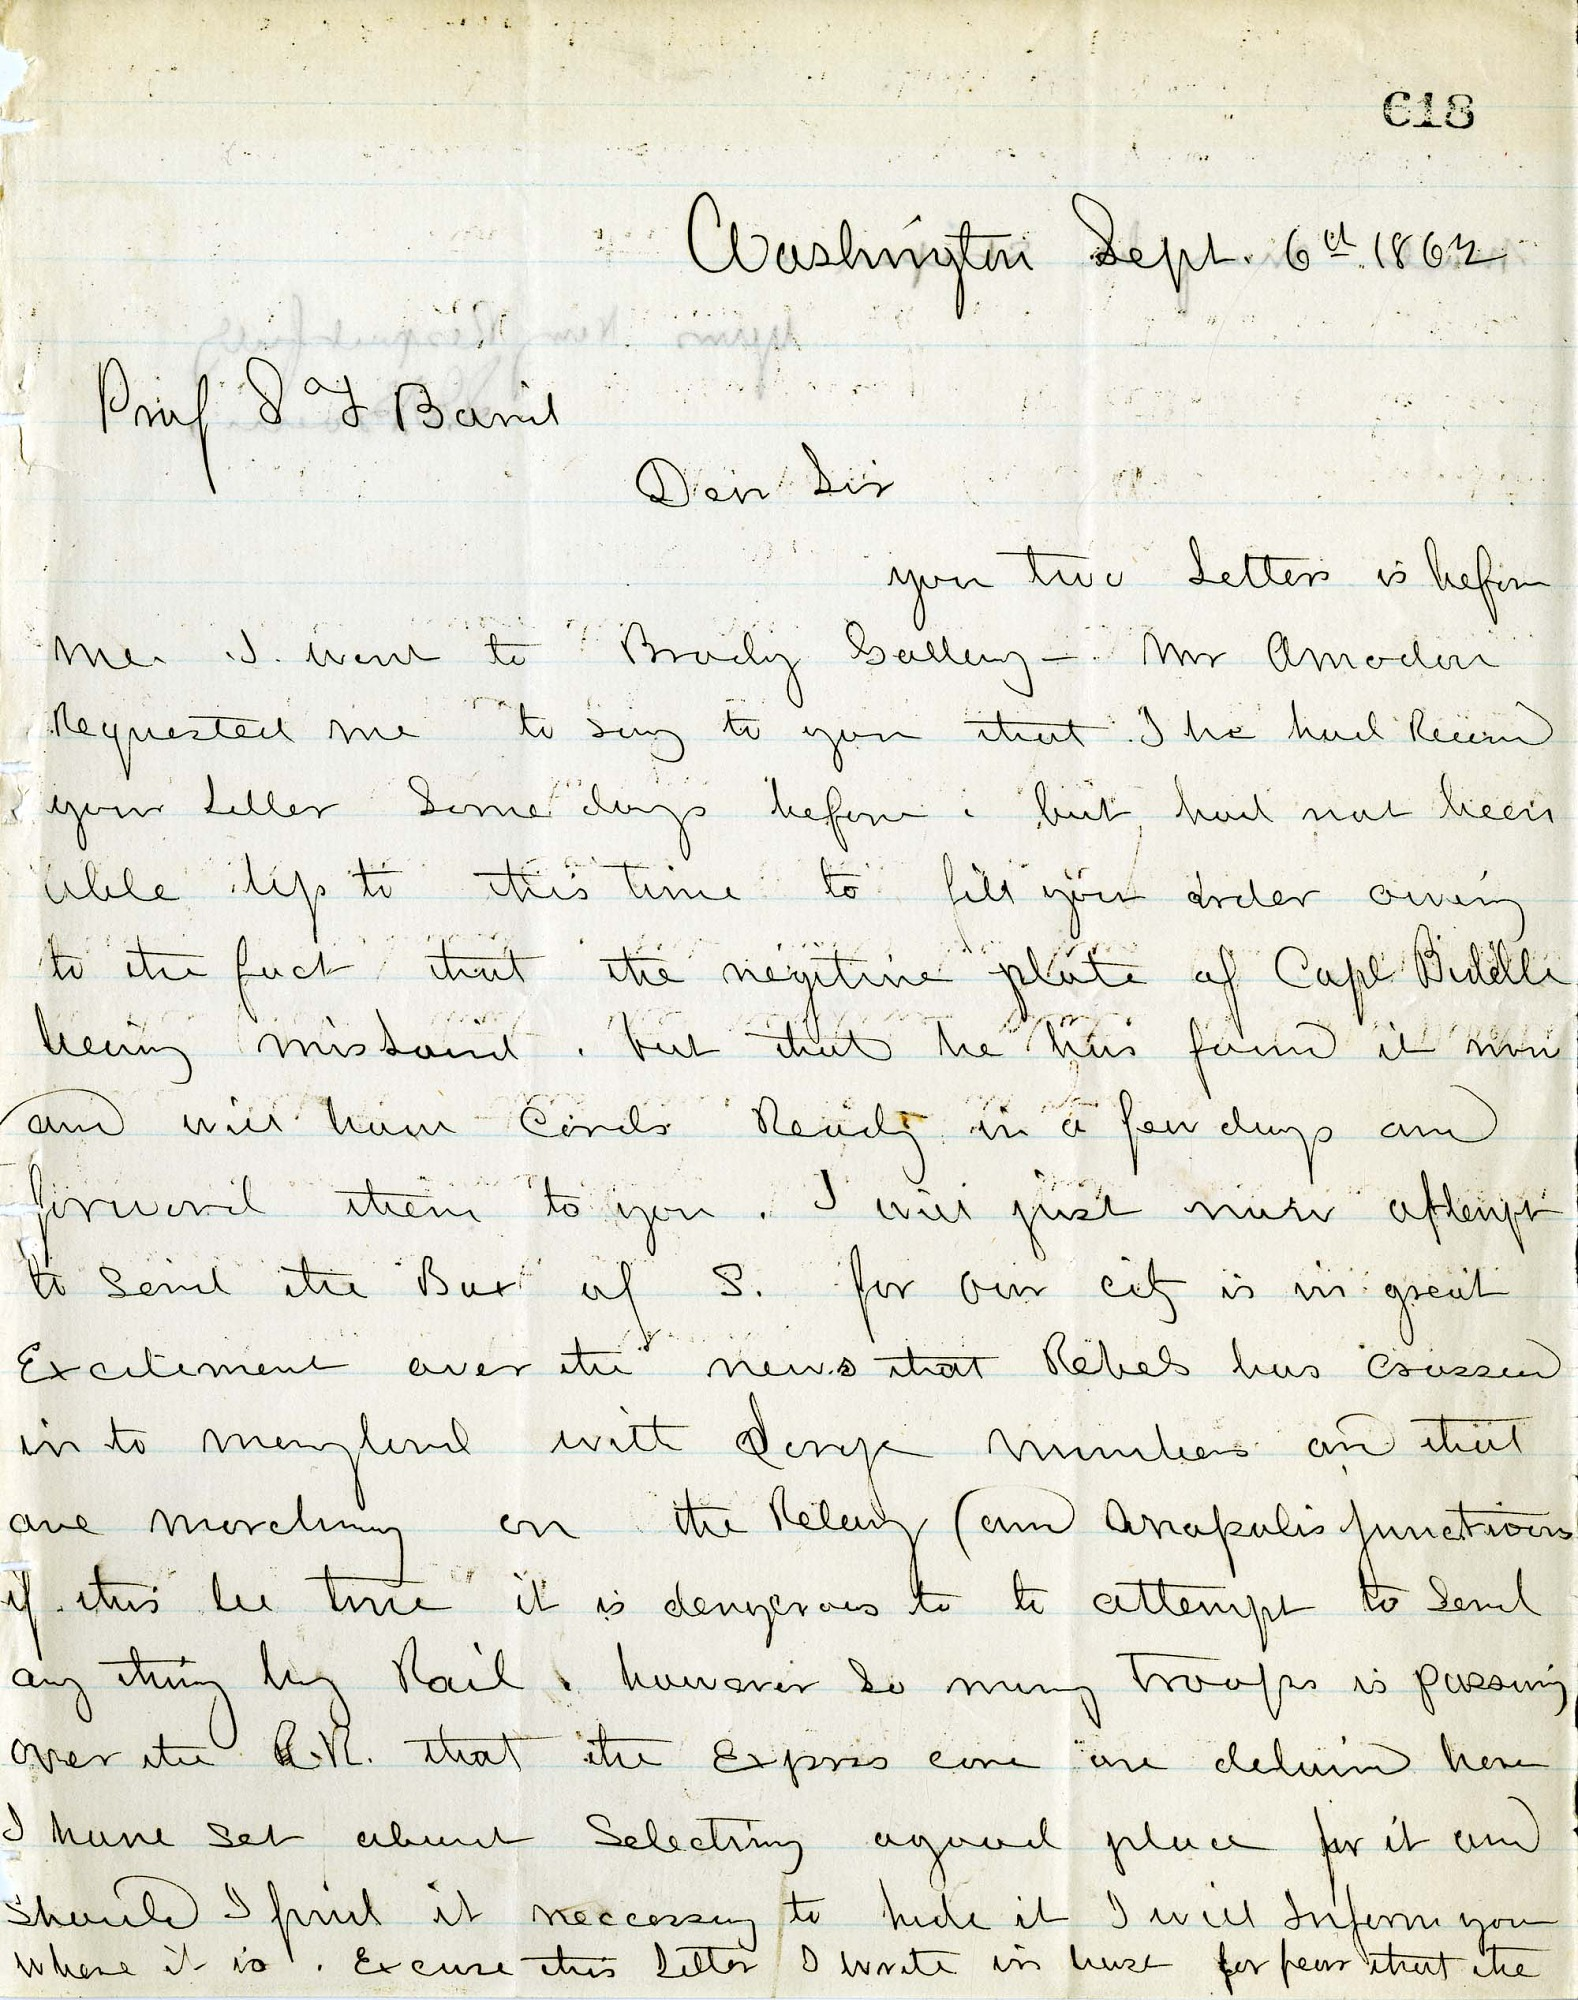 Solomon Brown Letter - Sept 6, 1862 - Page 1